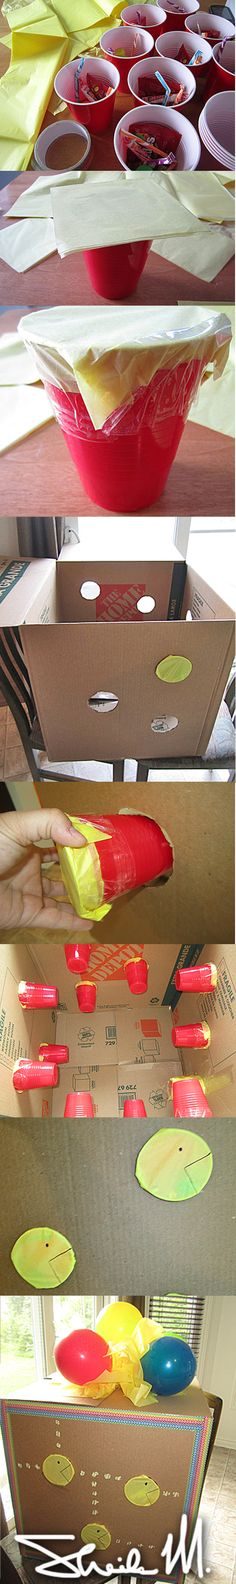 How to make a PUNCH surprise box for kids party. Awesome alternative for a piñata. Perfect for indoor or with no hanging options. Did a Pacman theme. Kids LOVED it!!! Use only 2 thin layers of gift paper and use a bigger cup to put the candy. Use the cup for template but cut it a bit smaller so it holds better in the hole. Took me about 2 hours. It was the talk of the party! Enjoy!!!